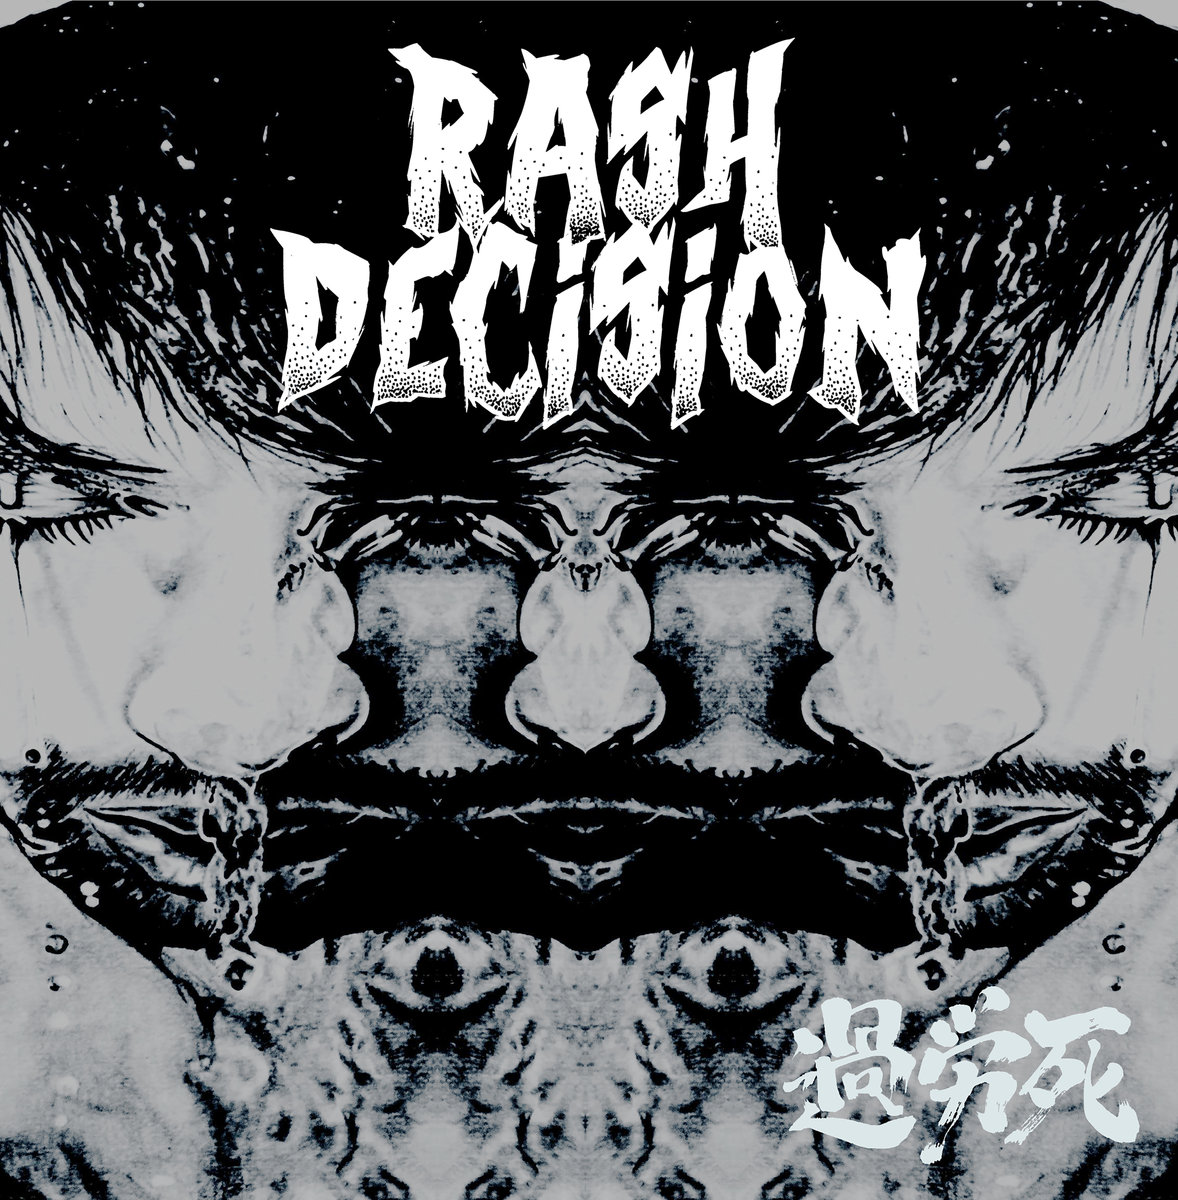 Album Review: Rash Decision – Karoshi